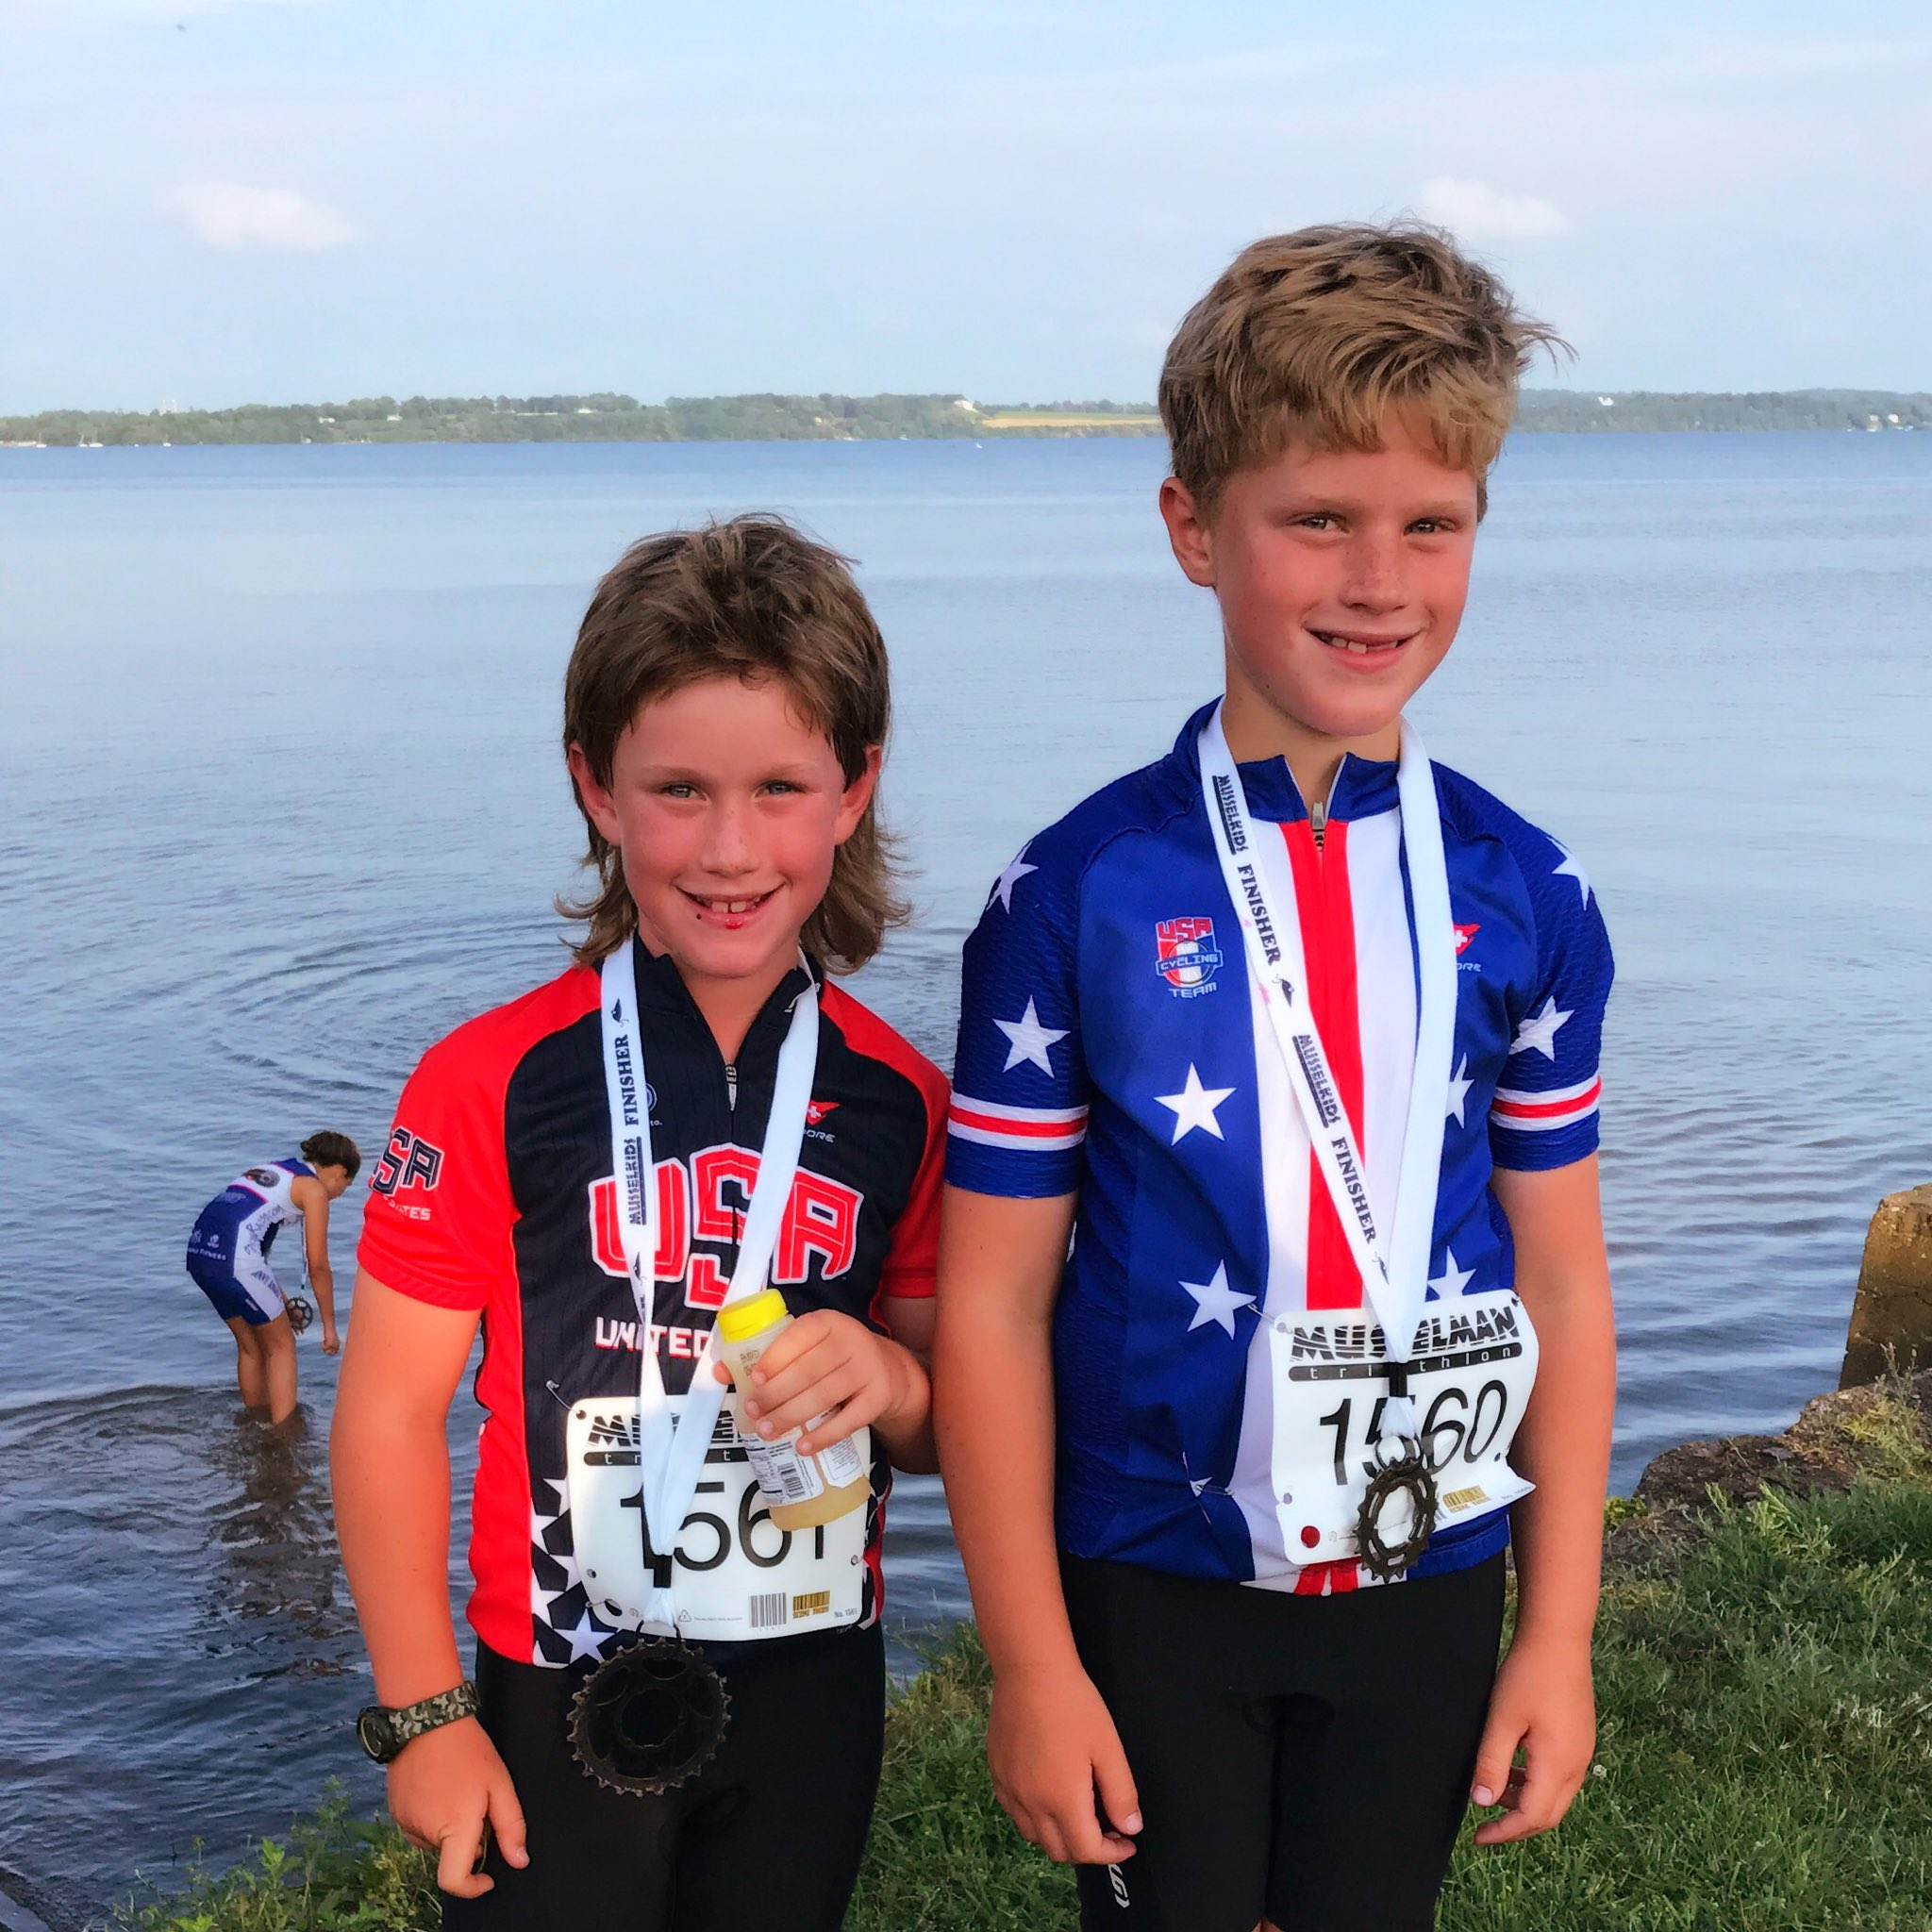 Thanks @musselmantri for a great kids event! #Musselman2017 https://t.co/CaCmEbEC3X